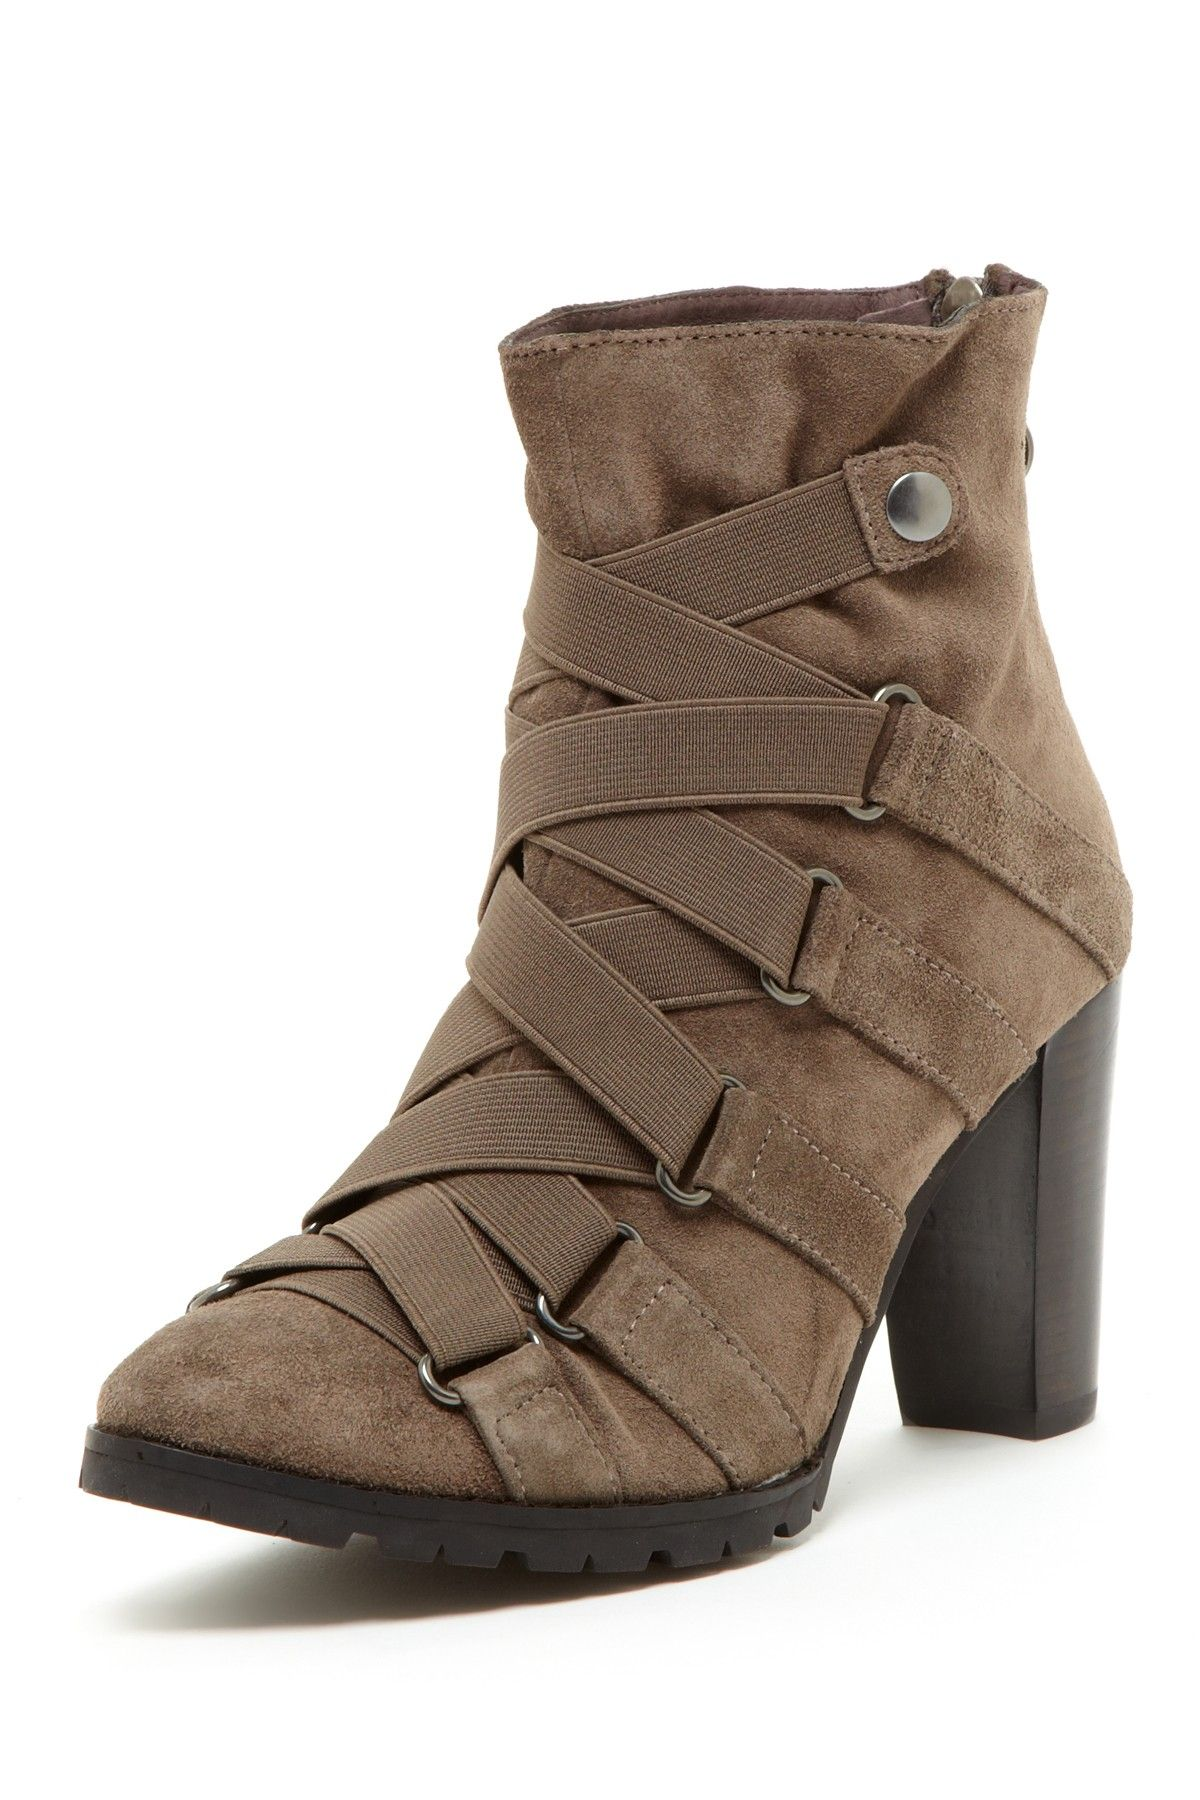 67147b9f96c5 Biviel Strappy Ankle Bootie New Shoes